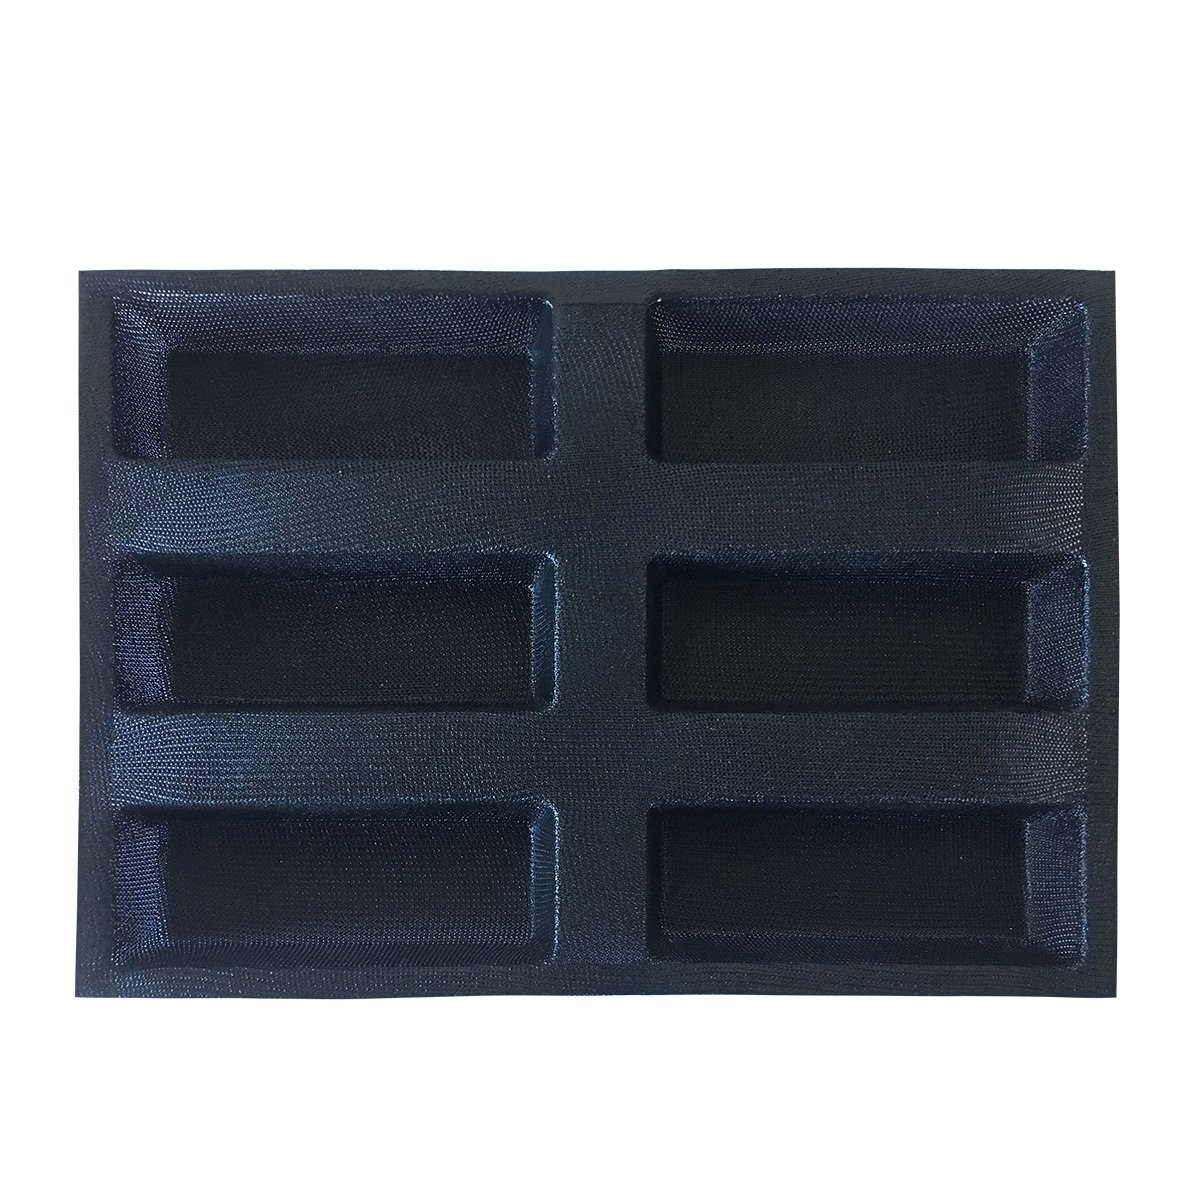 Bluedrop Silicone Bread Forms Square Shape Bread Molds Non Stick Bakery Trays Silicone Coated Fiber Glass 6 Caves Rectangle Moulds by Bluedrop (Image #7)